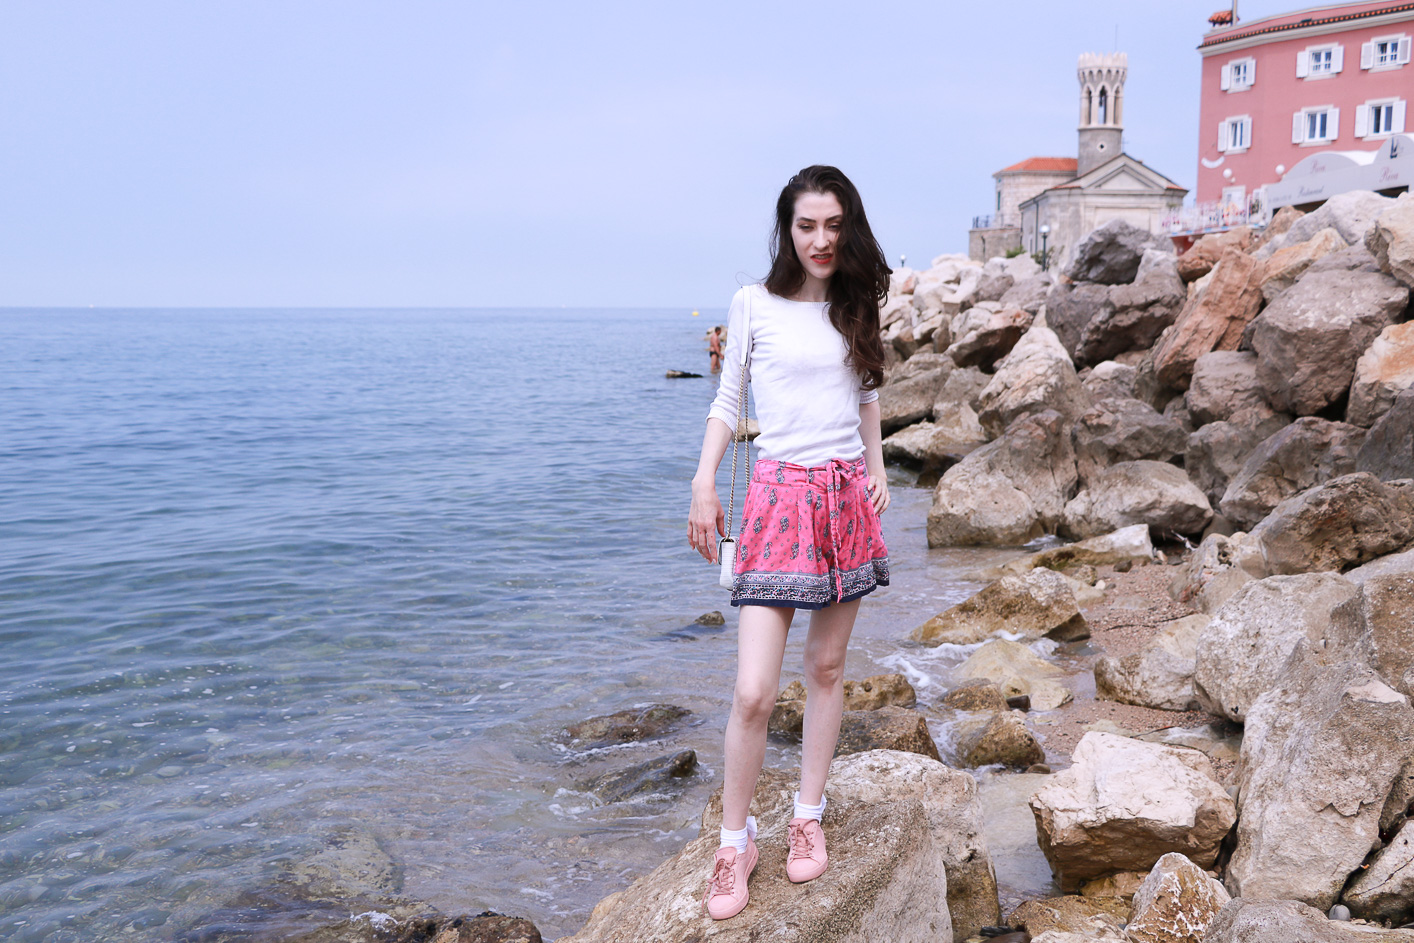 Fashion blogger Veronika Lipar of Brunette From Wall Street on the bell tower above the seaside city wearing silk shorts, pale pink sneakers and white shoulder bag